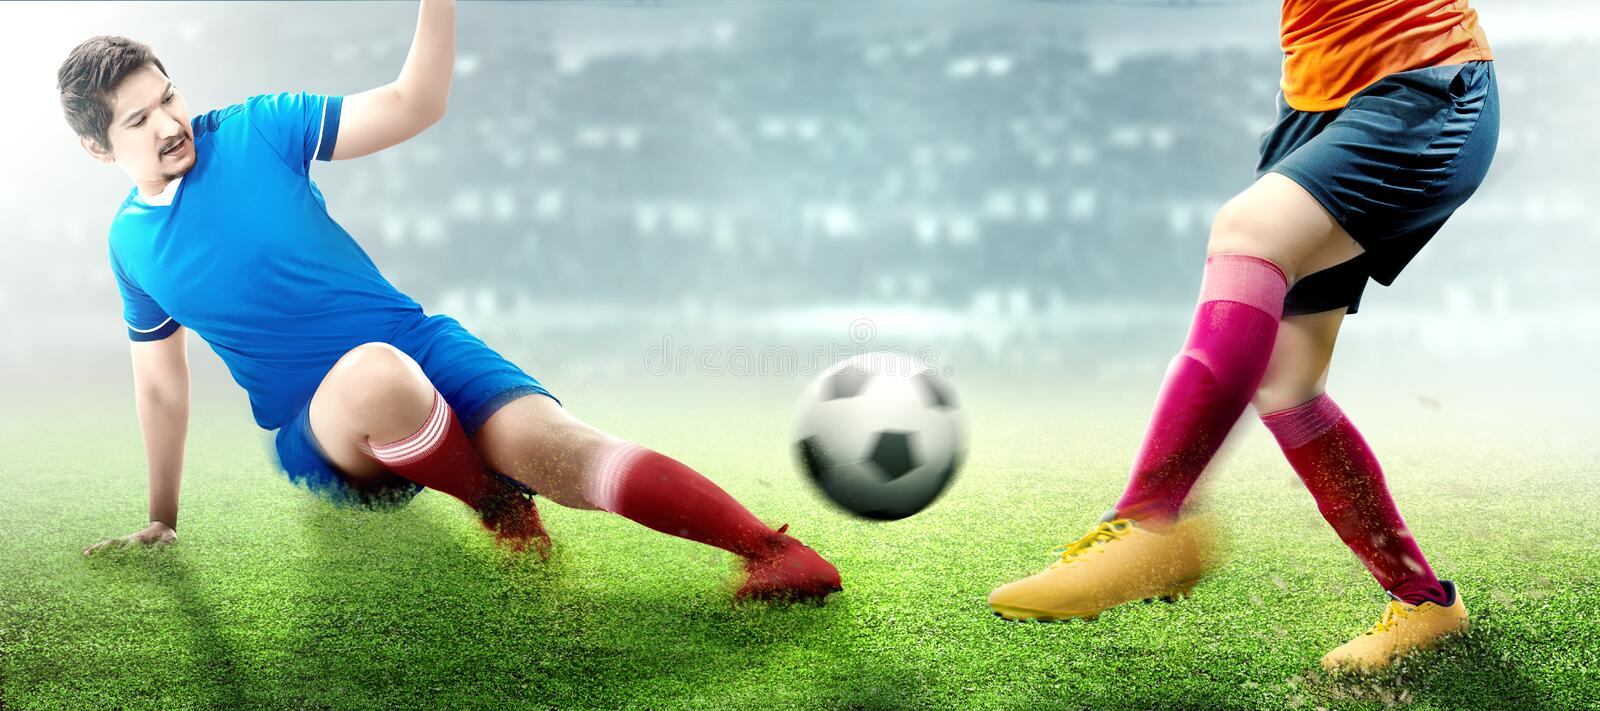 Asian football player man in blue jersey sliding tackle the ball from his opponent. On football field royalty free stock image